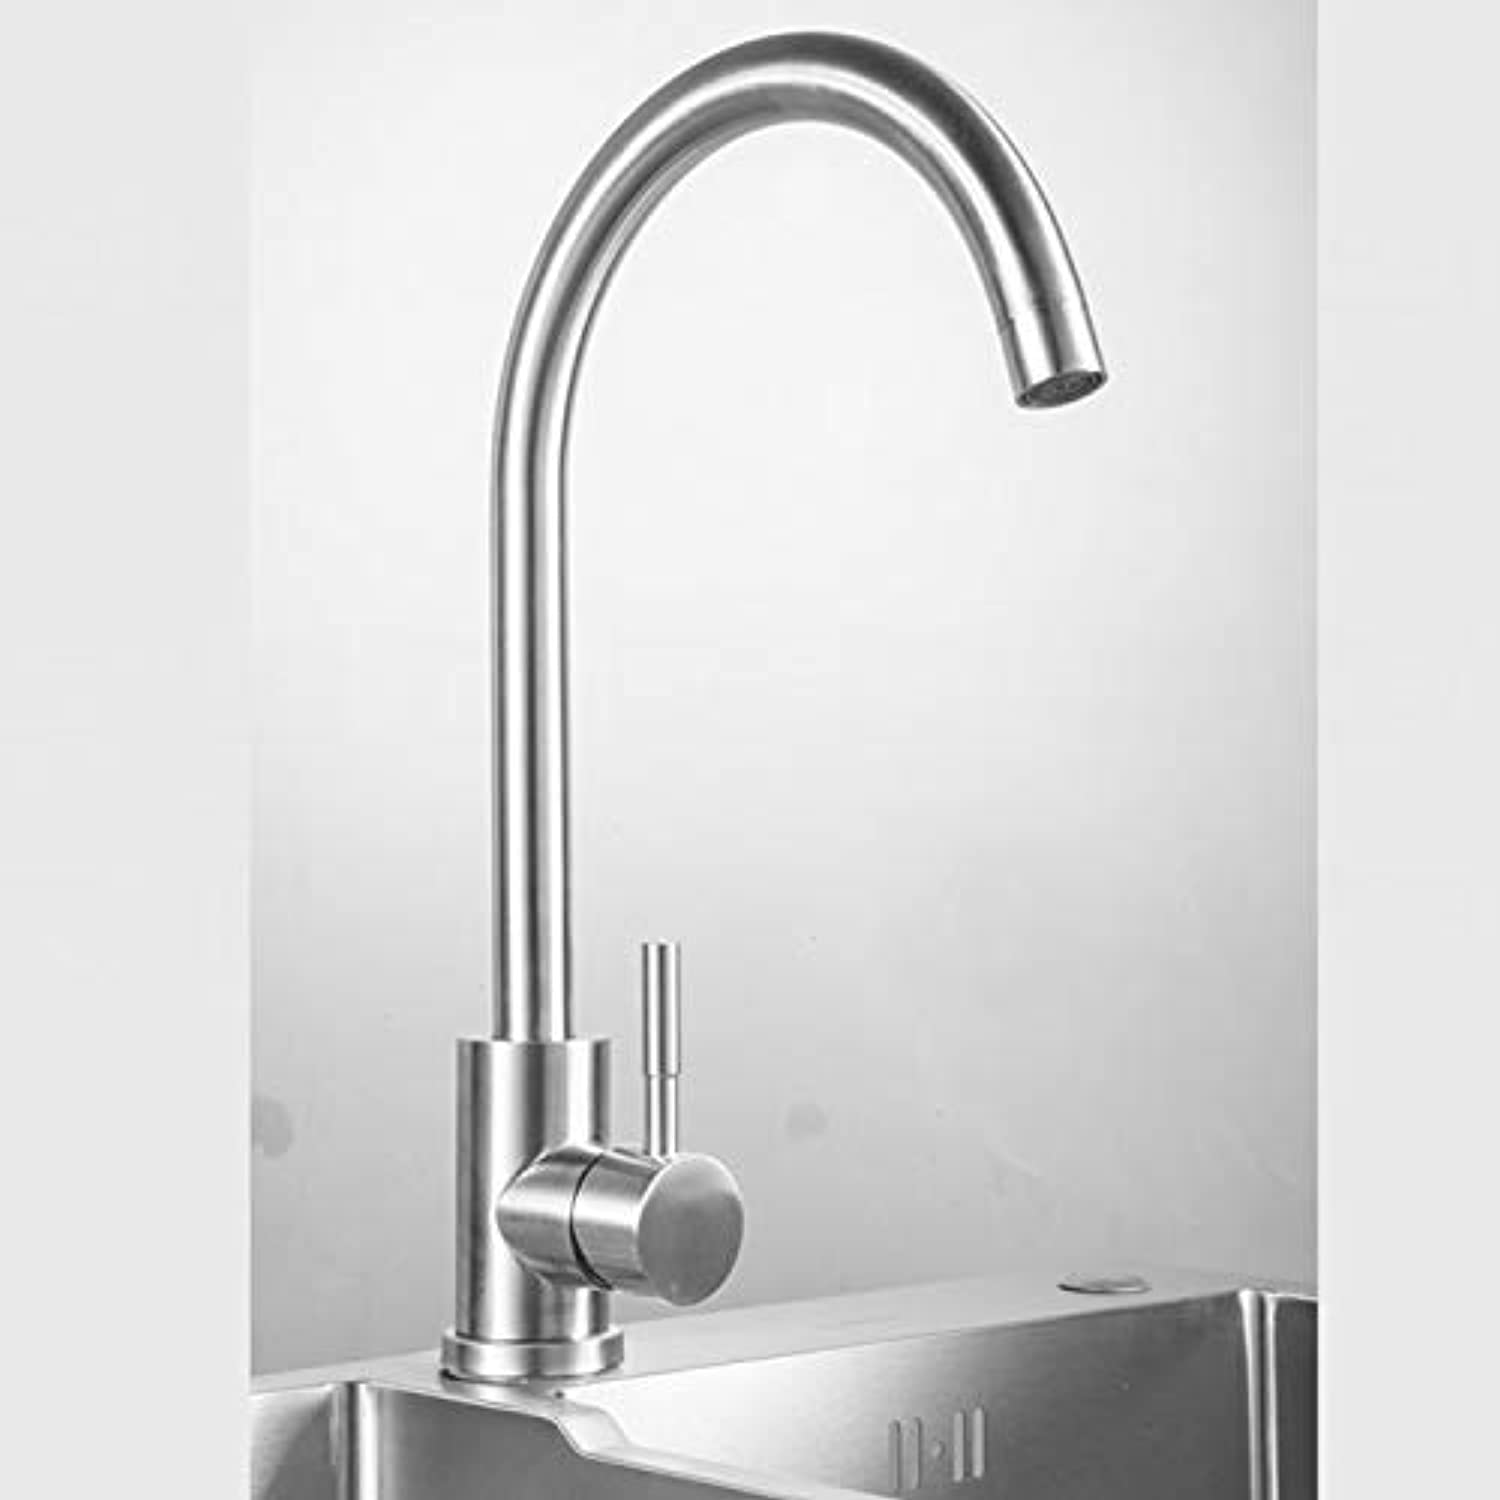 Kitchen Faucet Hot and Cold Brushed Sink Faucet Can Be redated 304 Stainless Steel